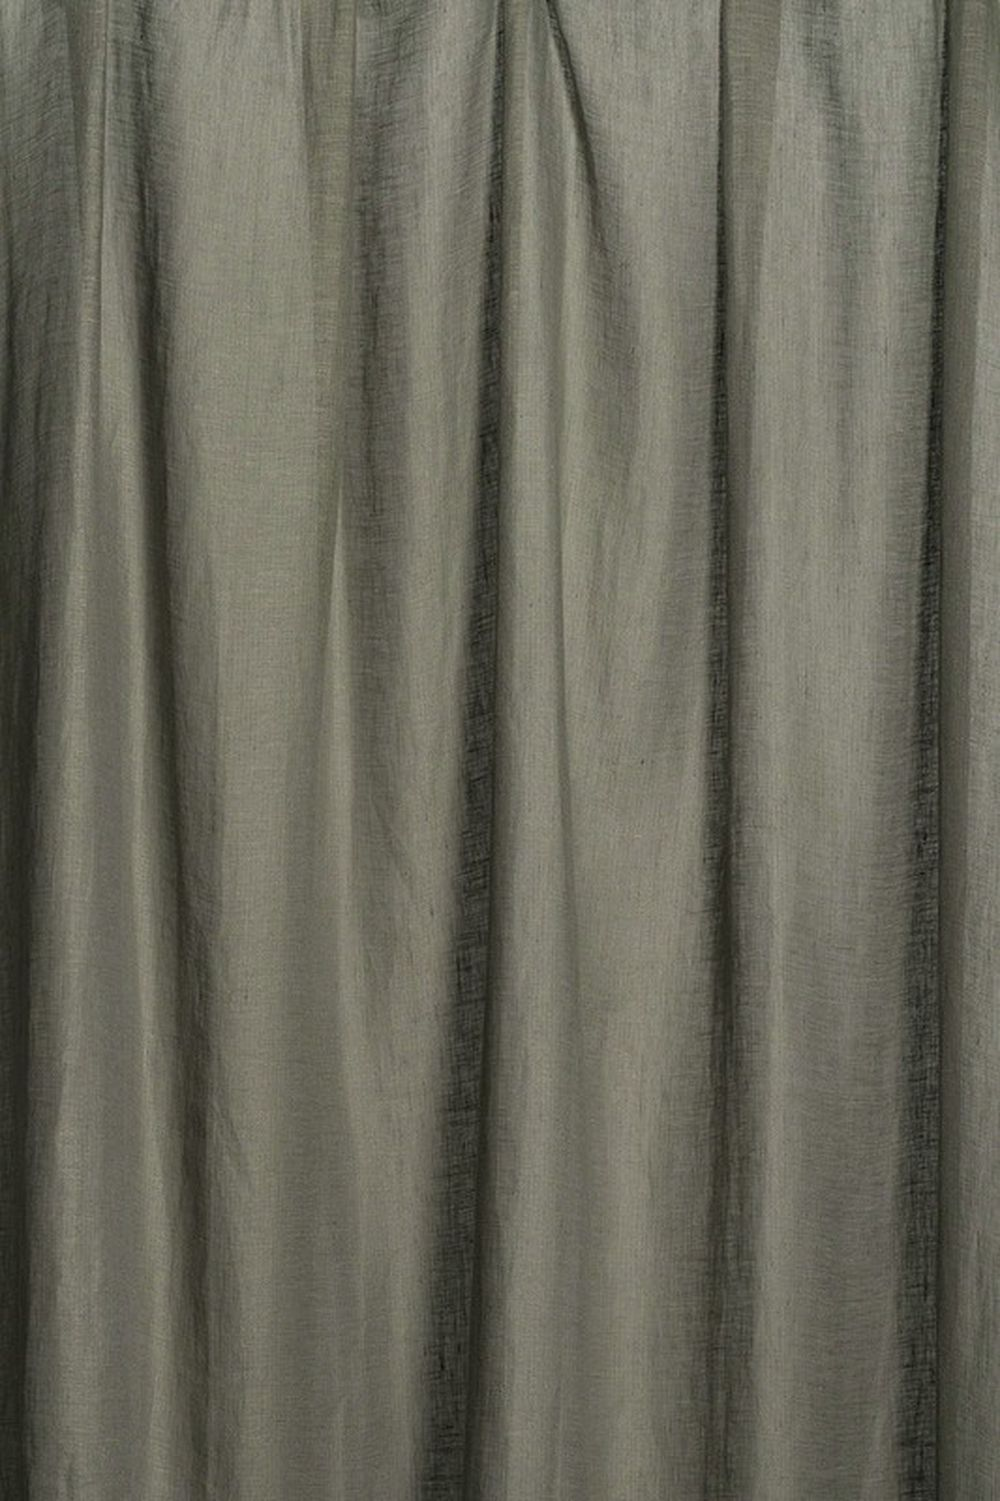 Photo of the fabric Laconia Air Charcoal swatch by James Dunlop. Use for Sheer Curtains. Style of Plain, Sheer